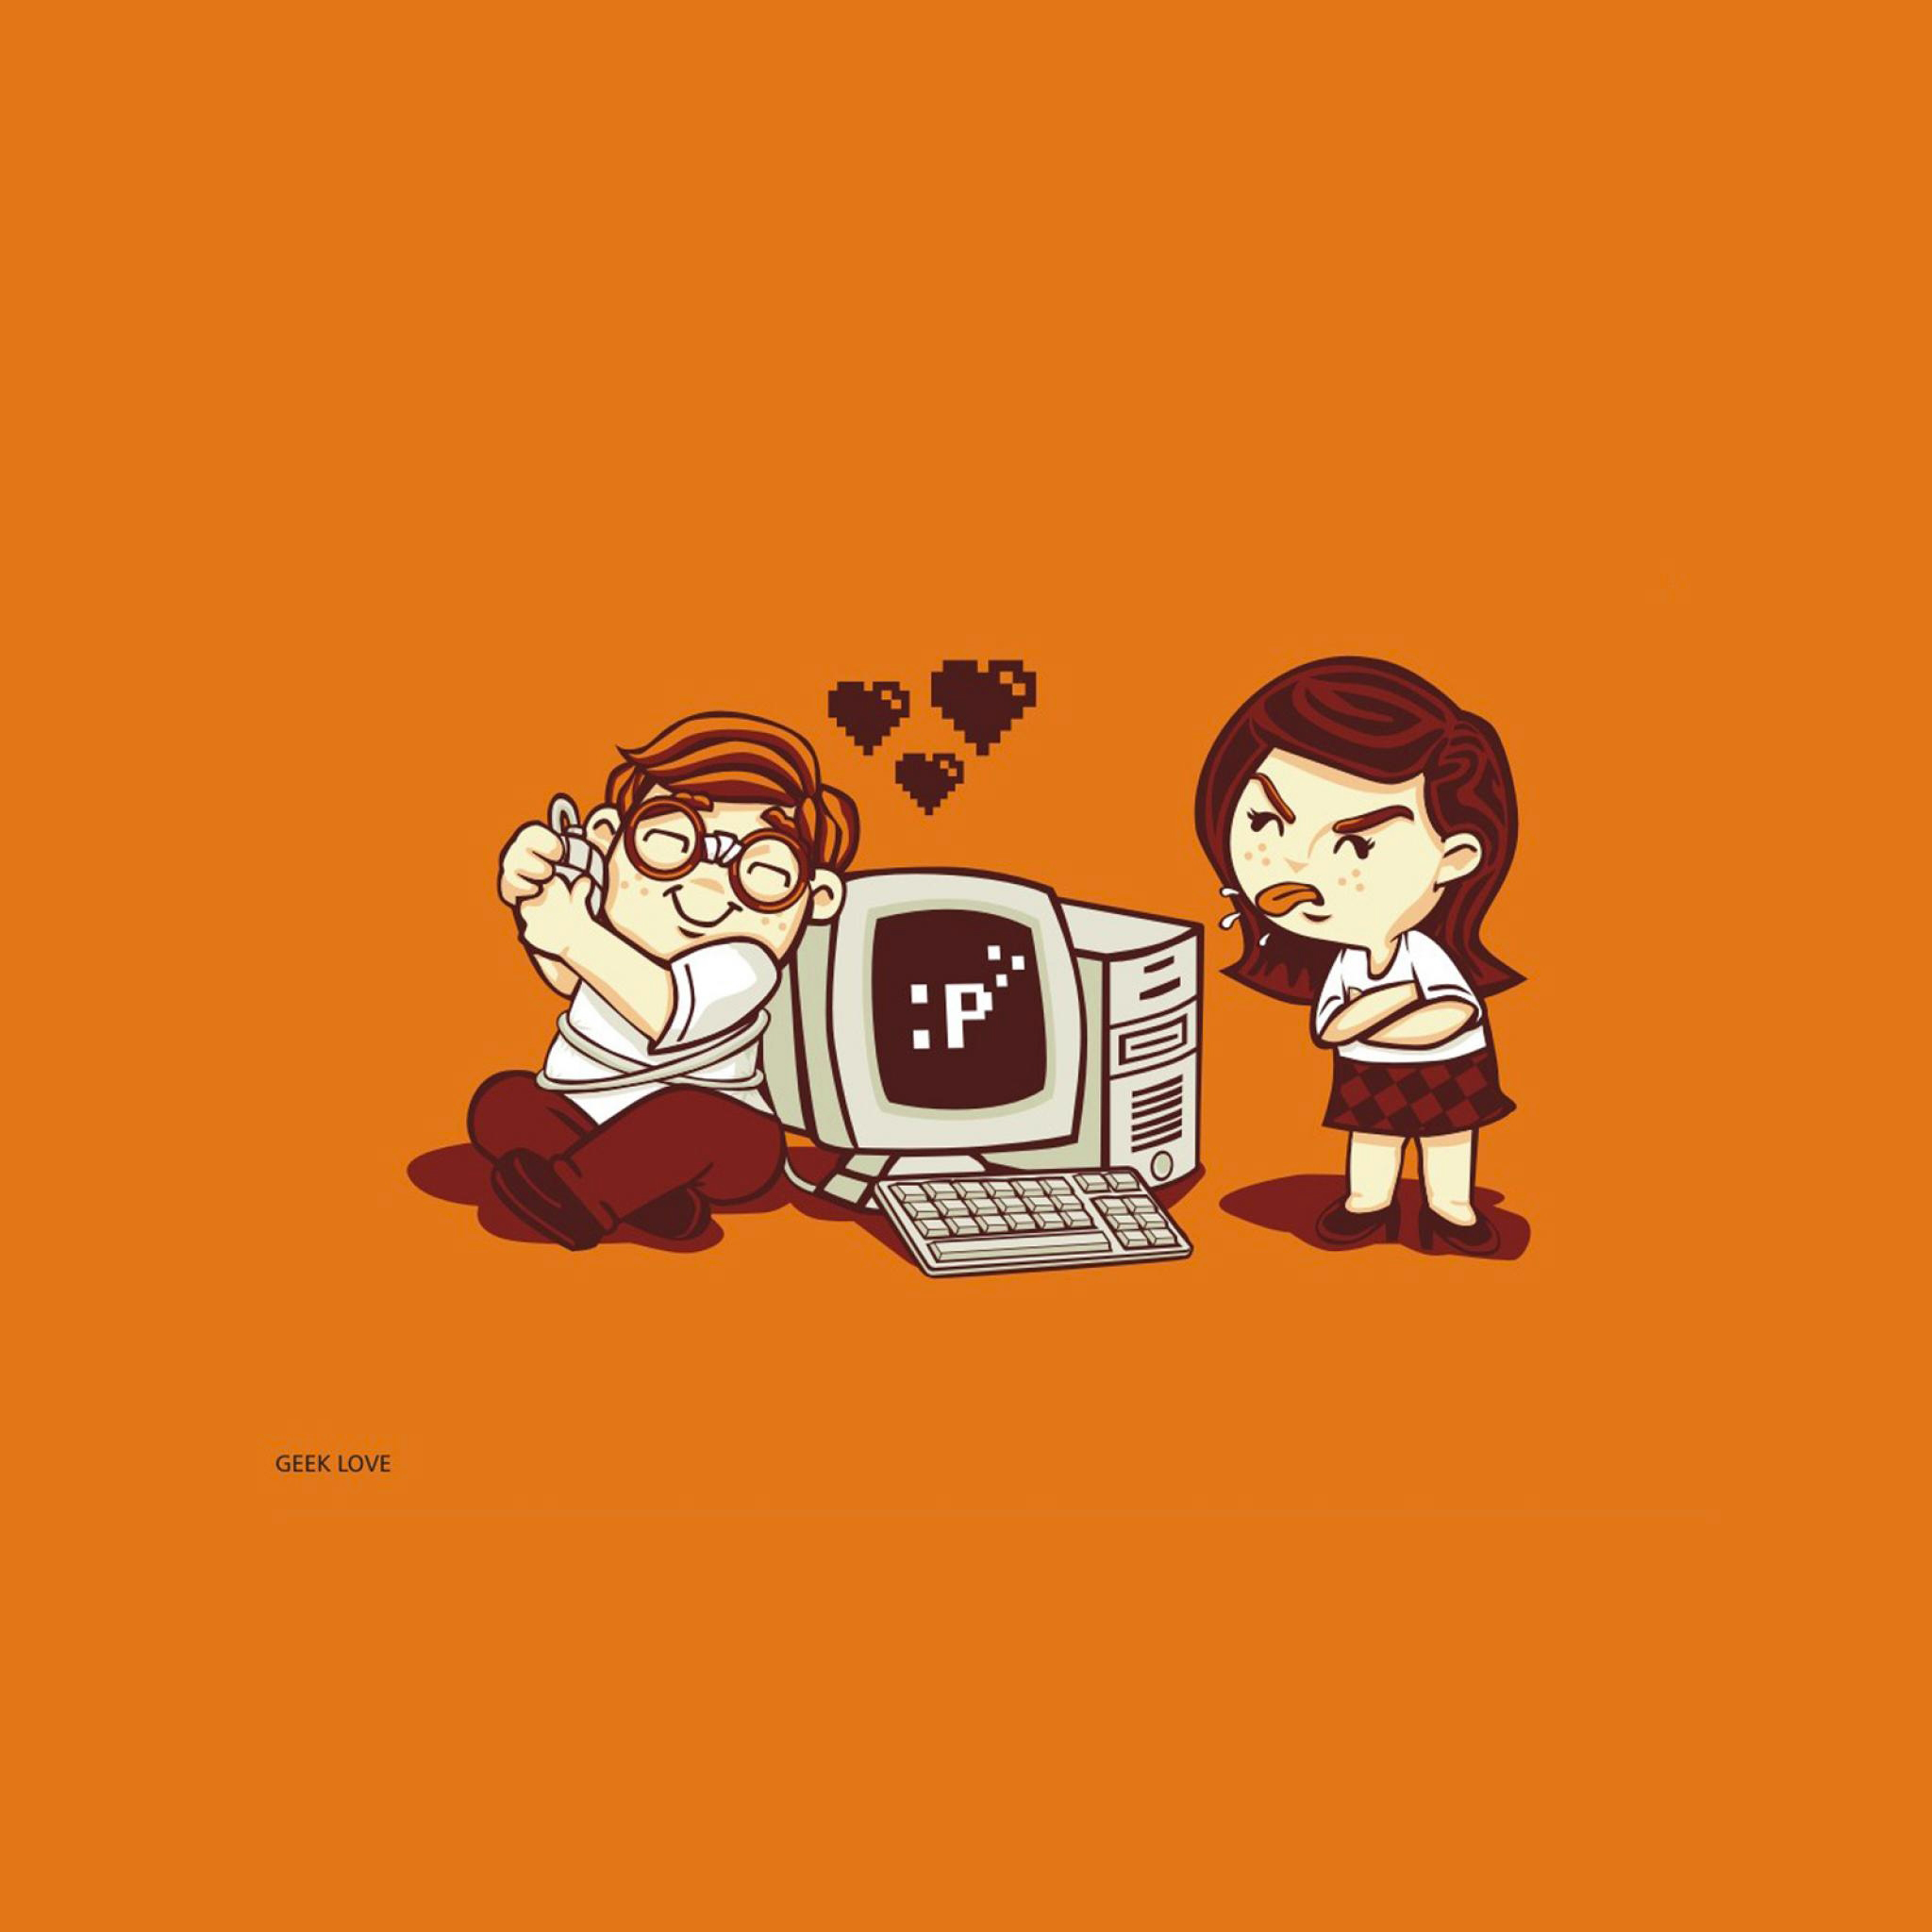 geek lovers